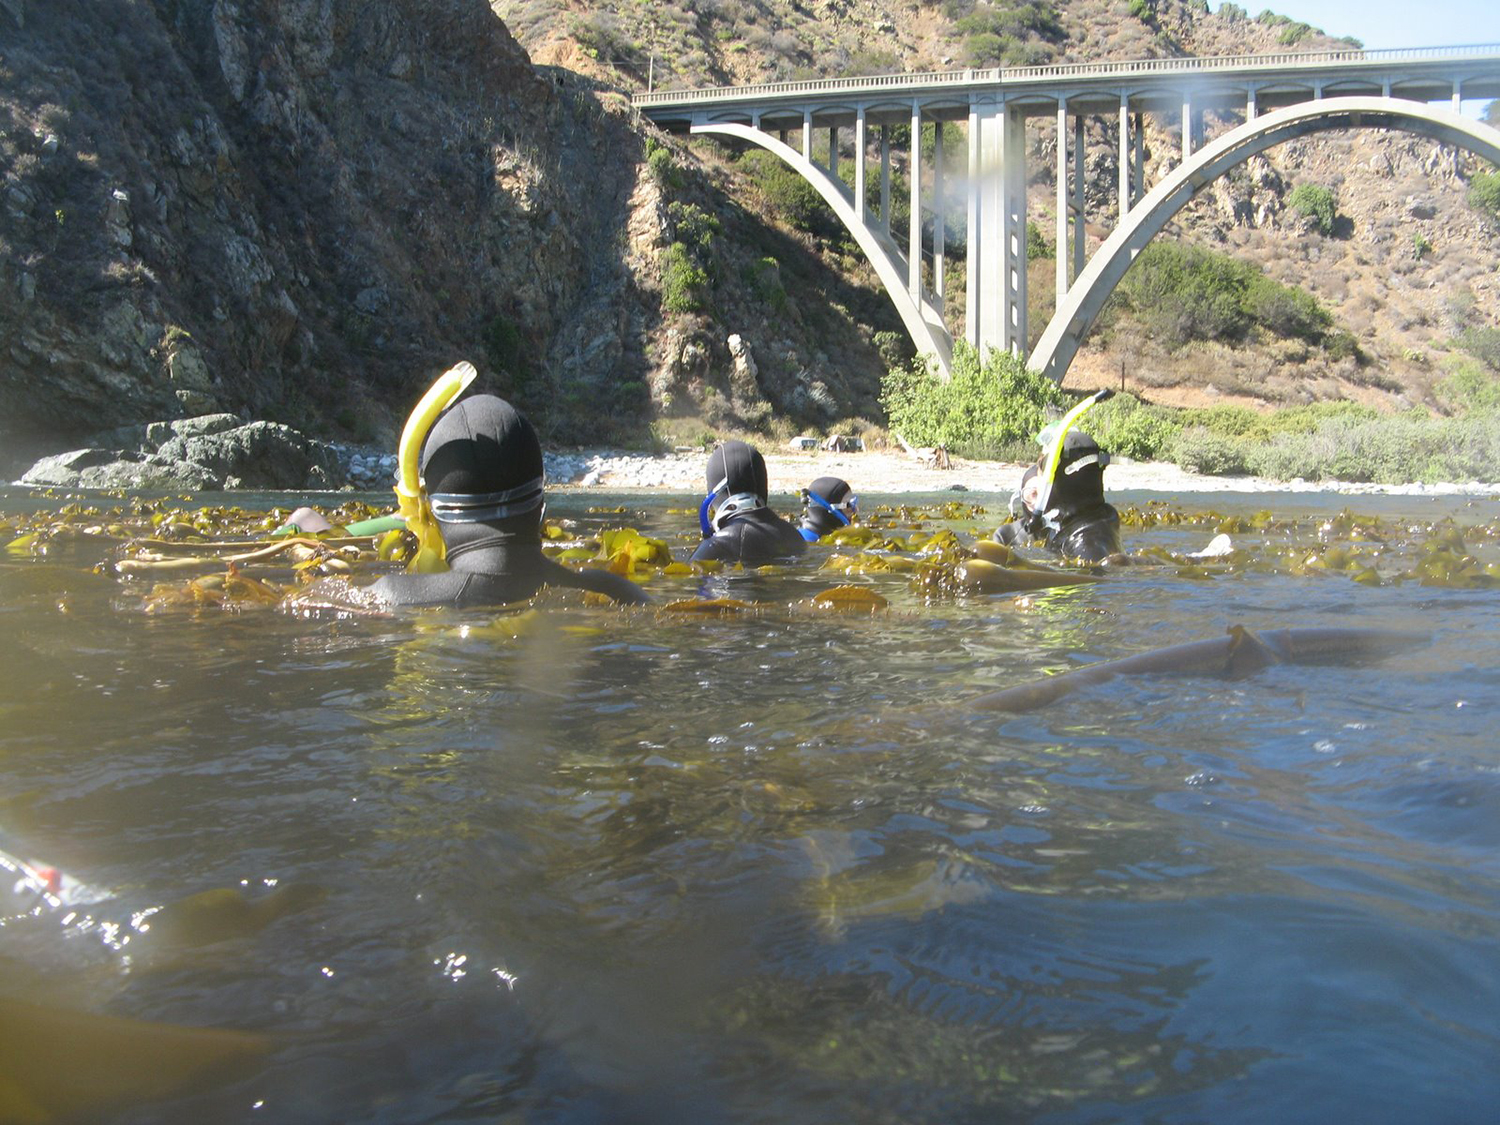 Snorkling by Bixby Bridge Big Sur Su08.jpg